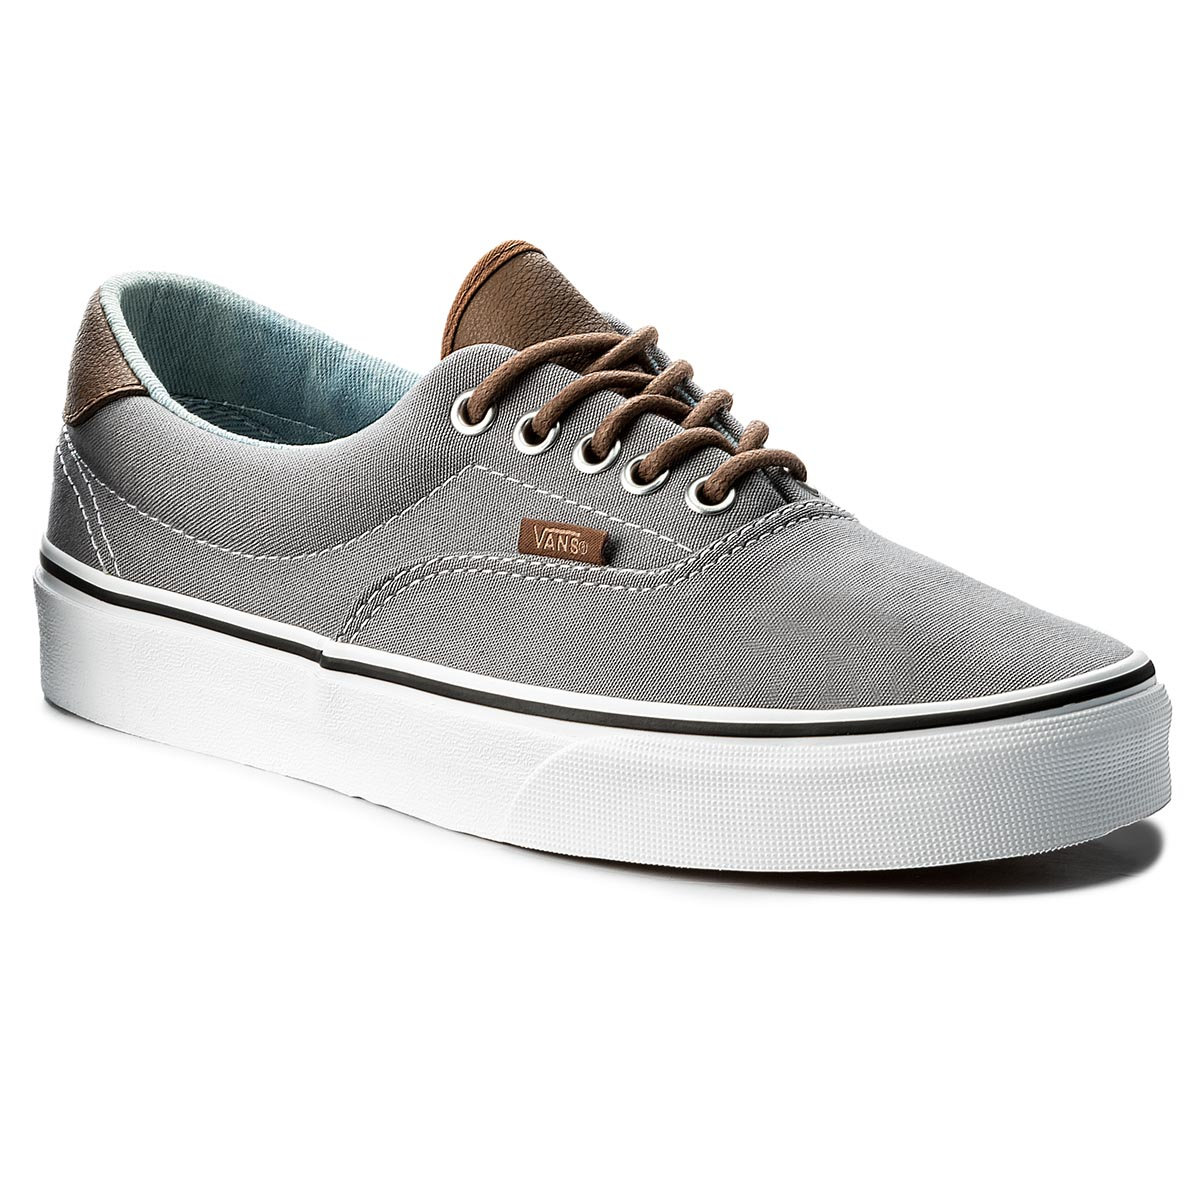 Teniși Vans - Era 59 Va38fsq70 (C&L) Frost Gray/Acid Den imagine epantofi.ro 2021